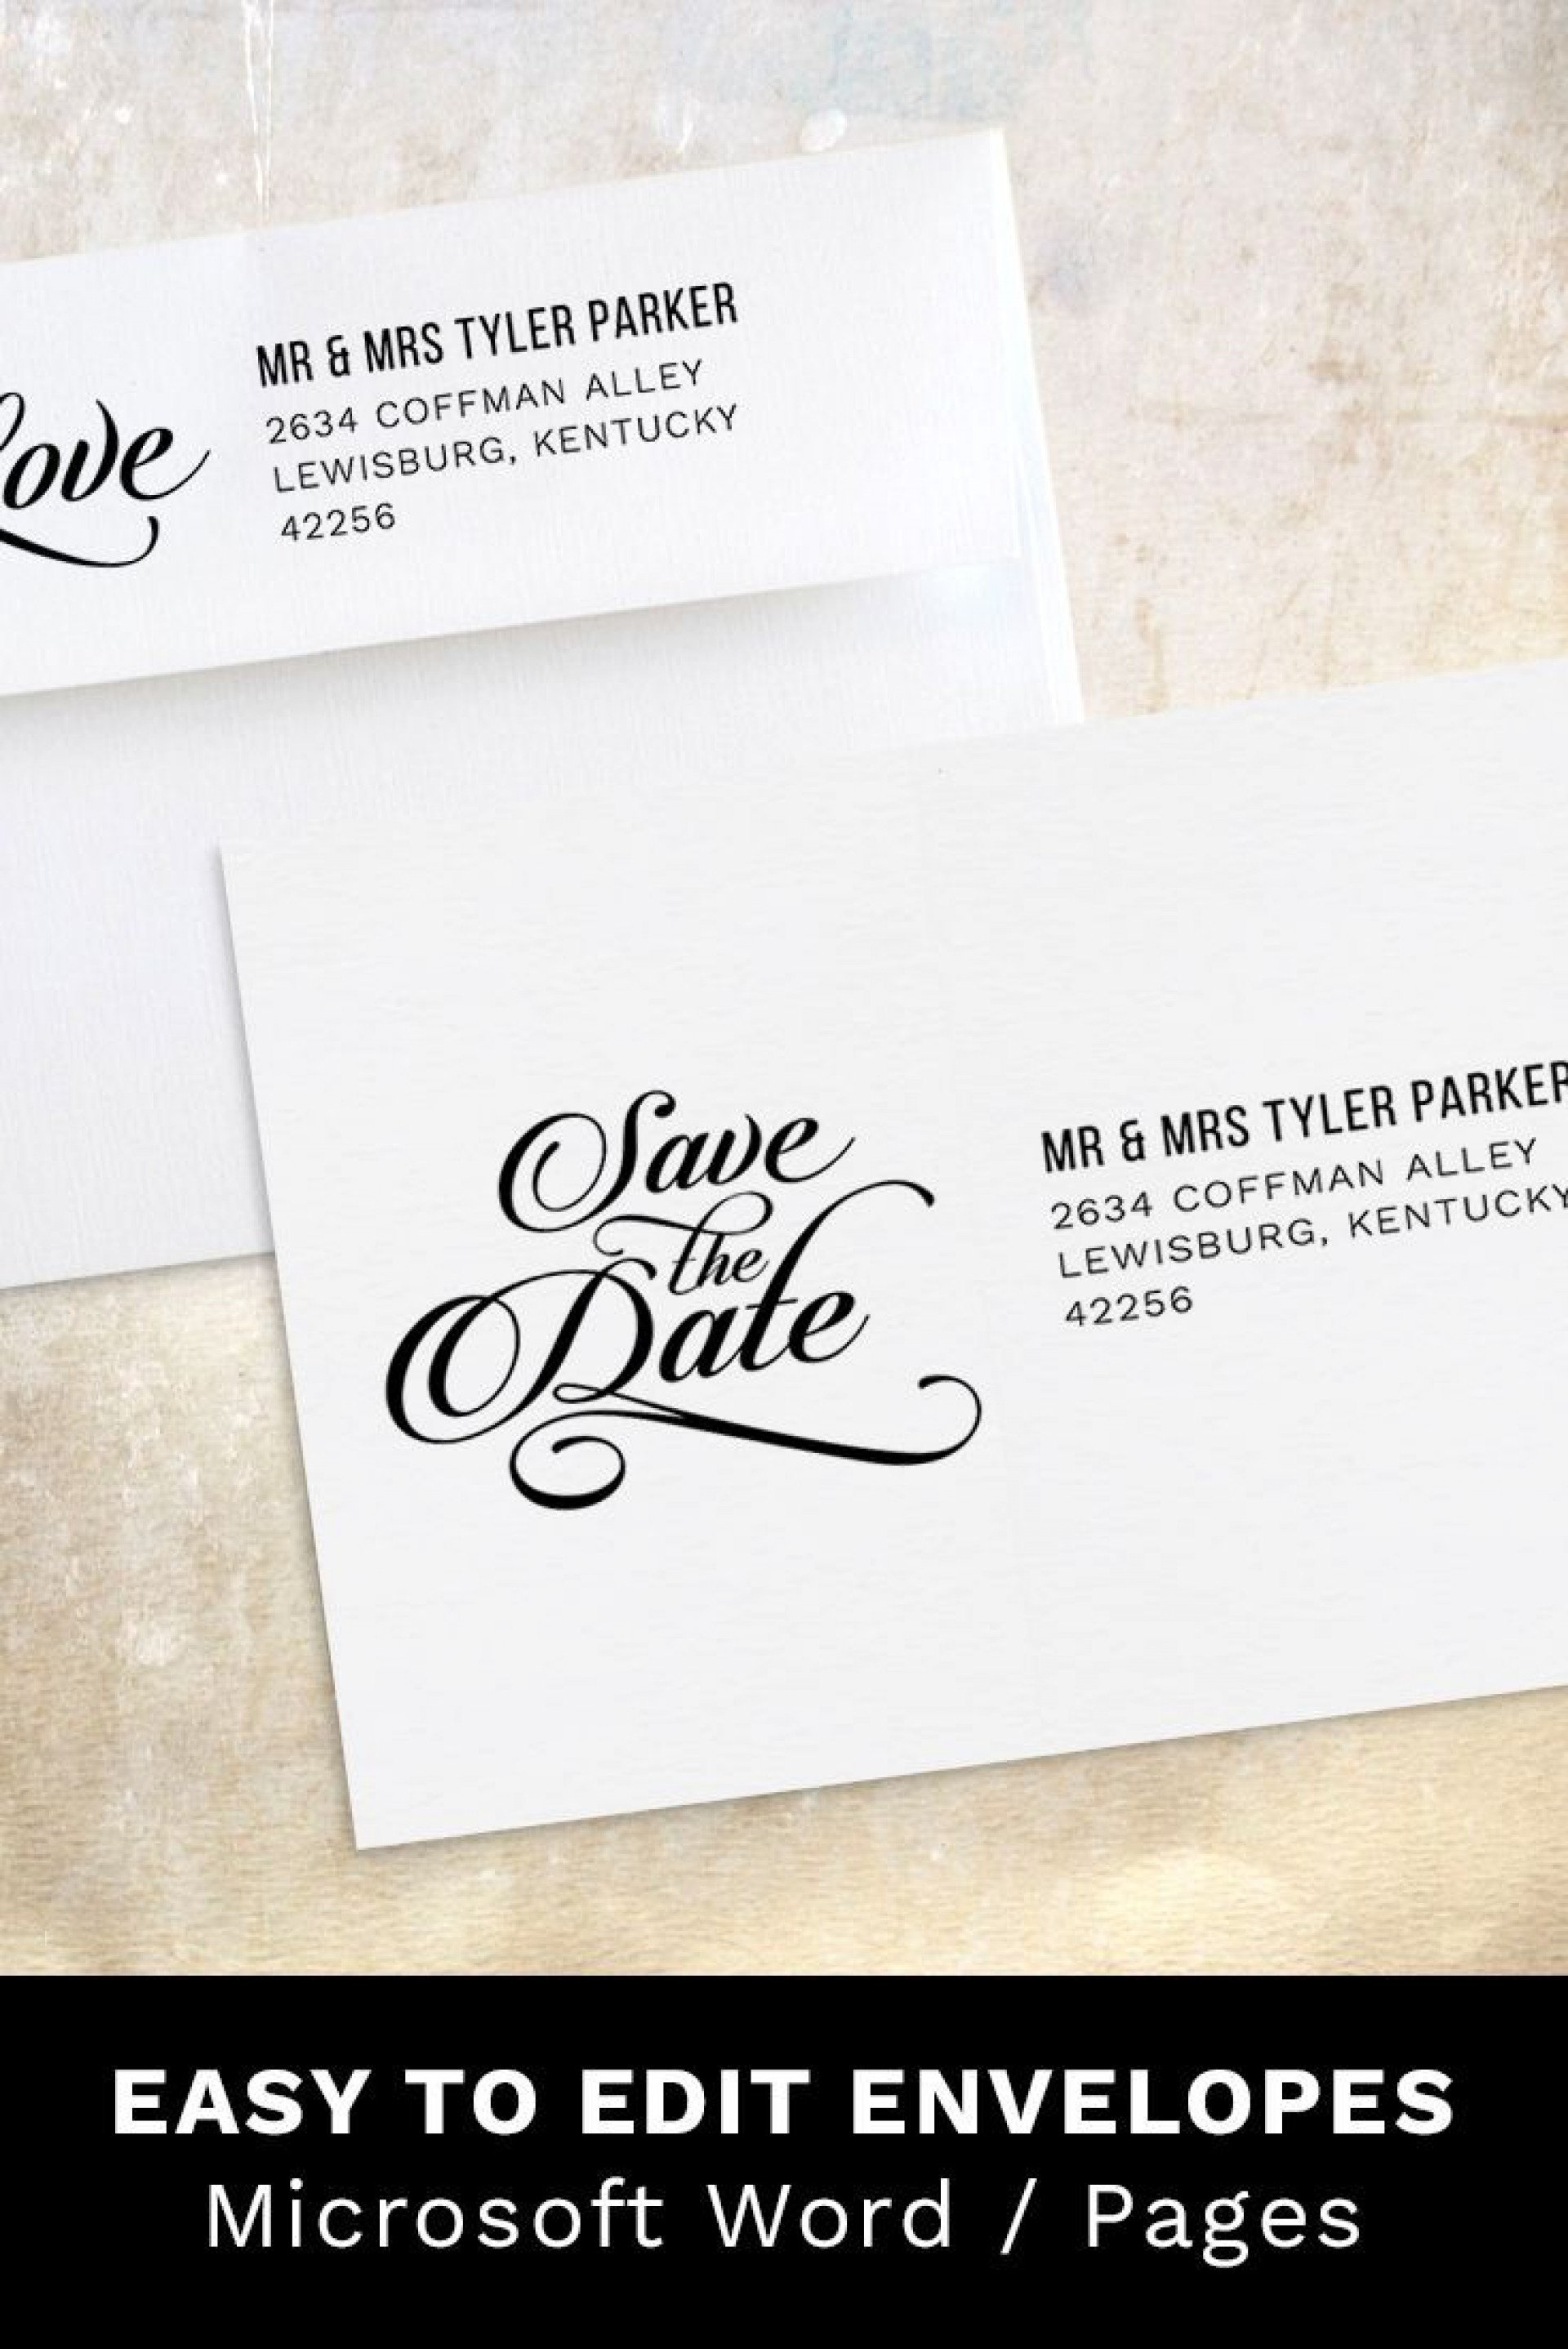 000 Shocking Save The Date Word Template High Def  Free Birthday For Microsoft Postcard Flyer1920